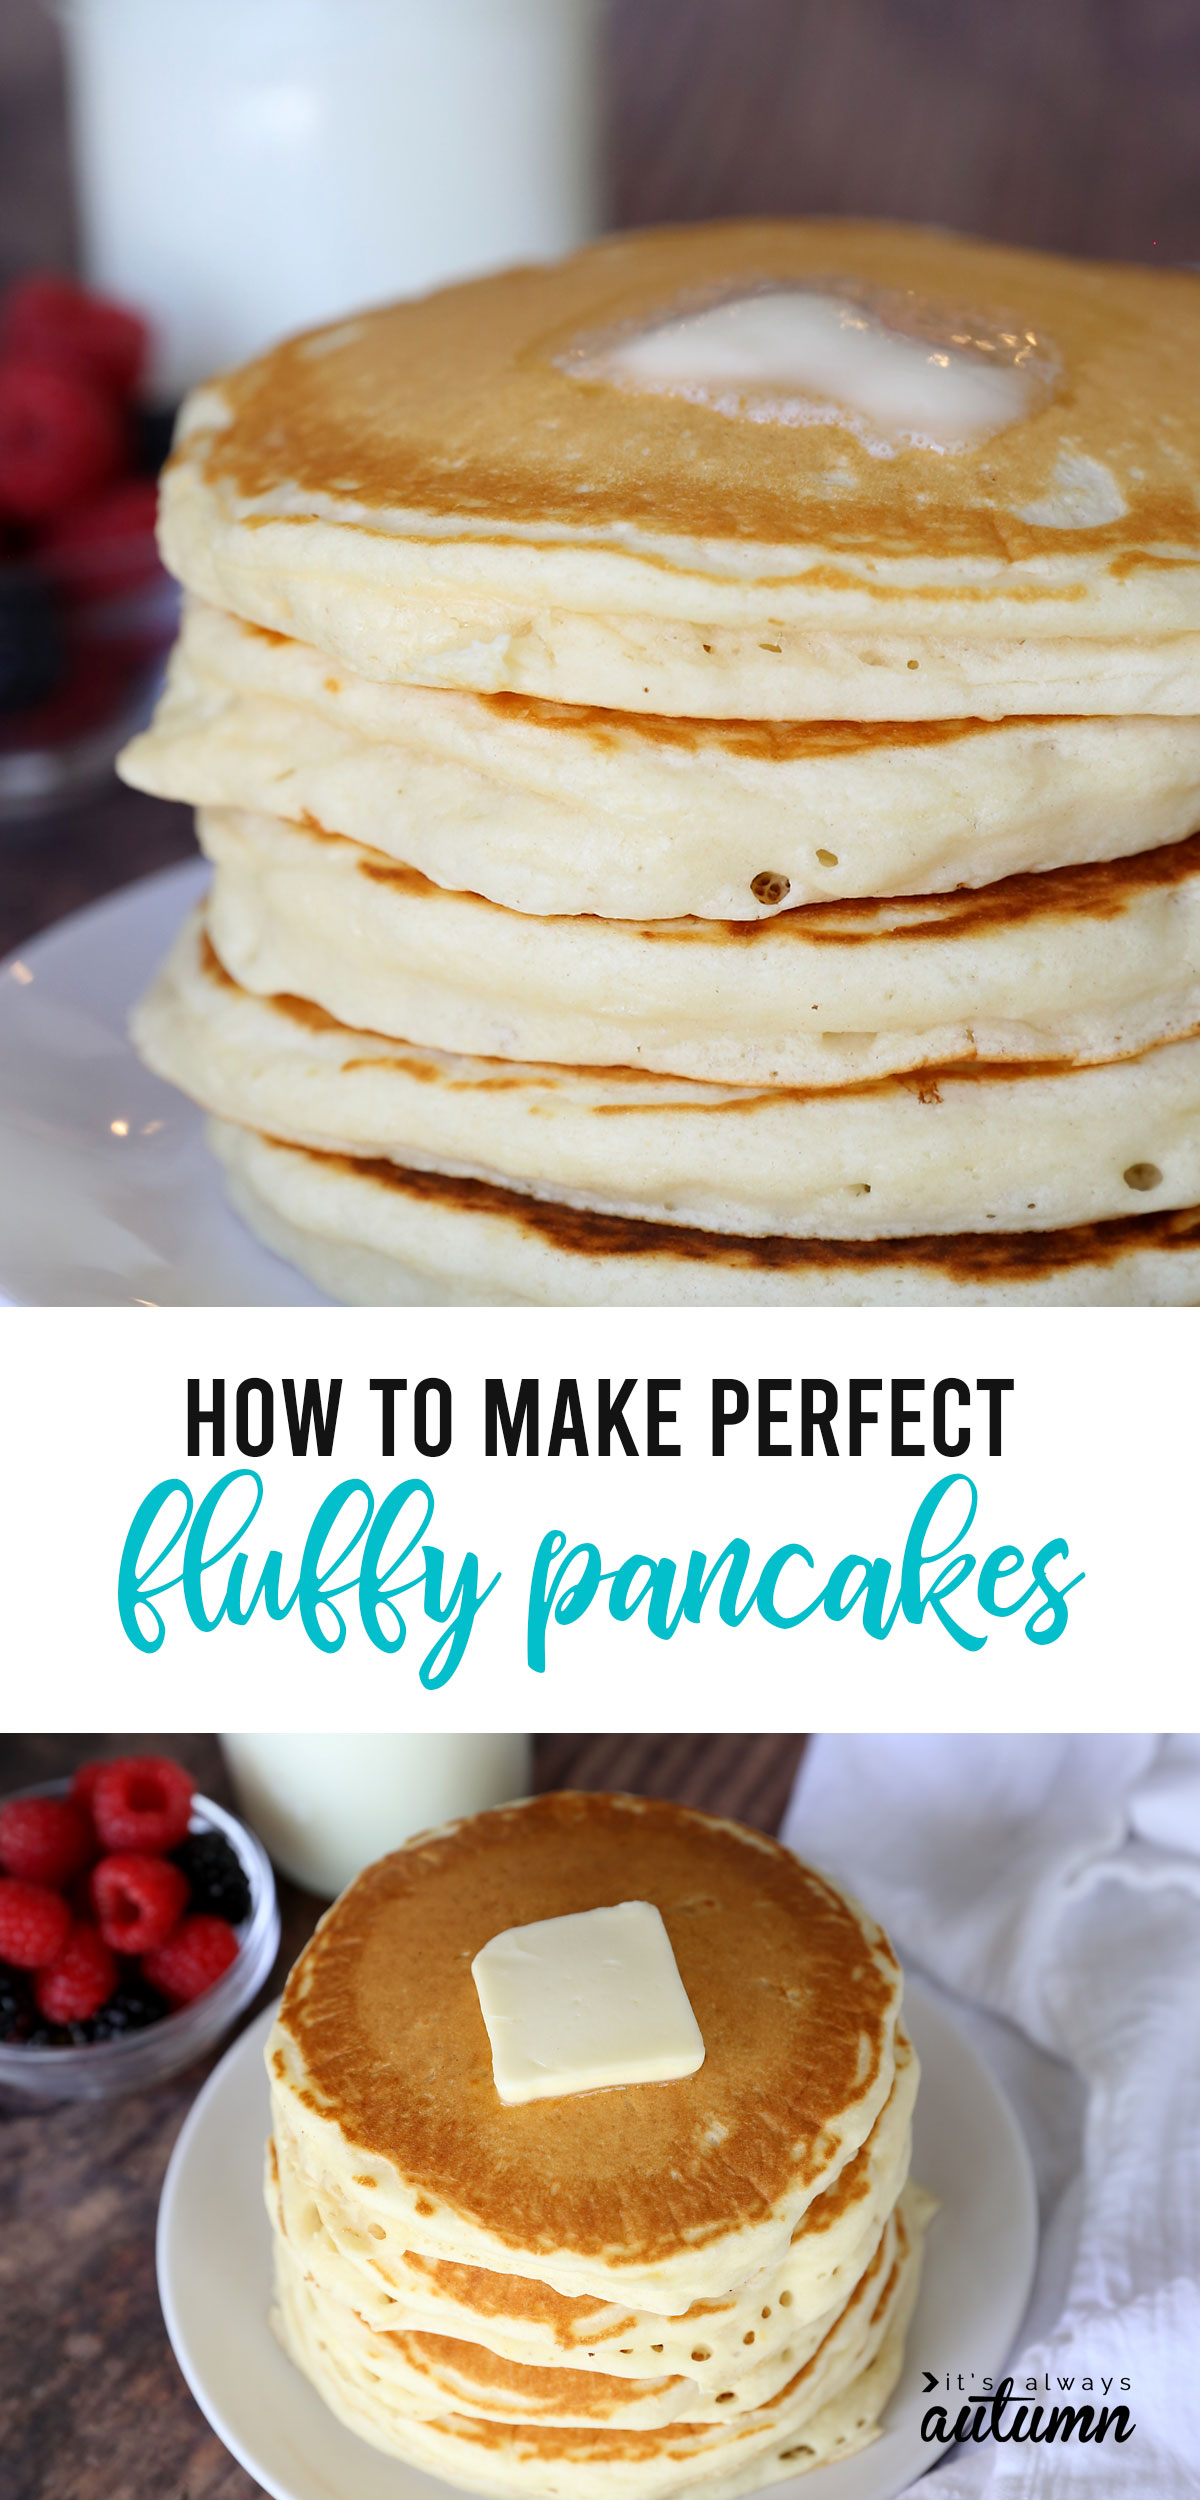 This is the PERFECT fluffy pancake recipe! It's super easy to mix up from pantry ingredients you have on hand, and they taste amazing!